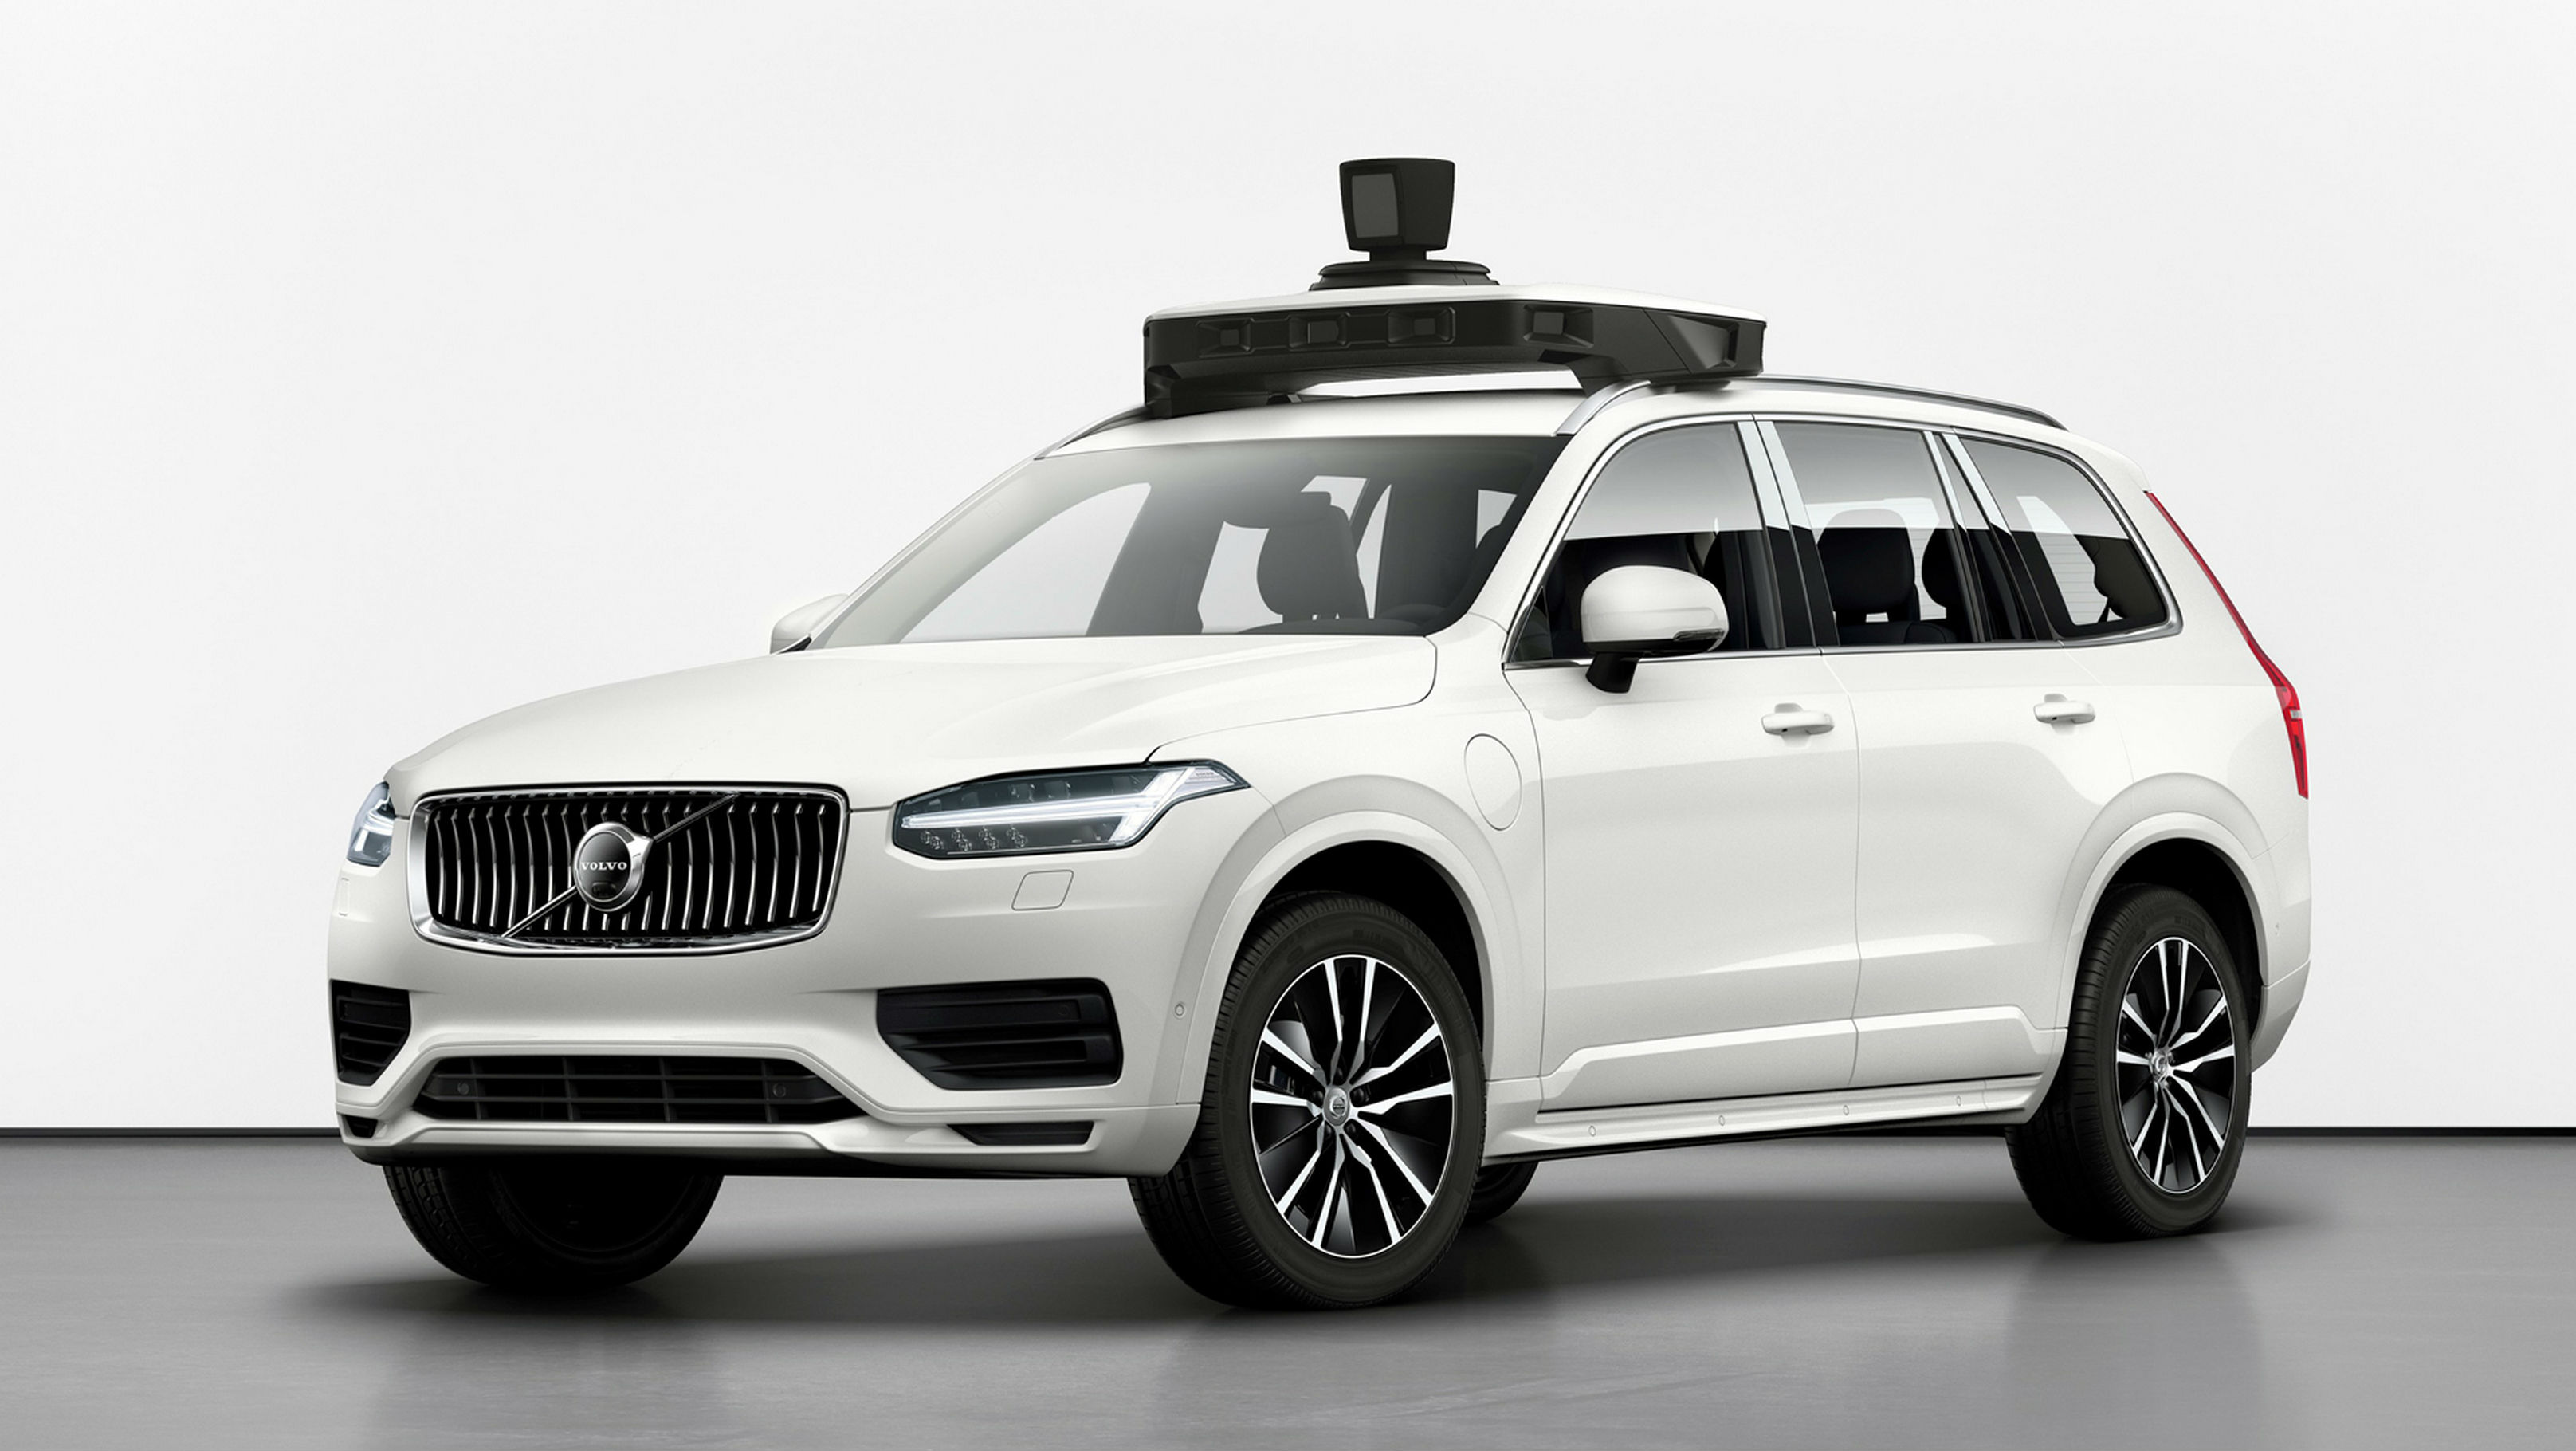 Uber's self-driving system